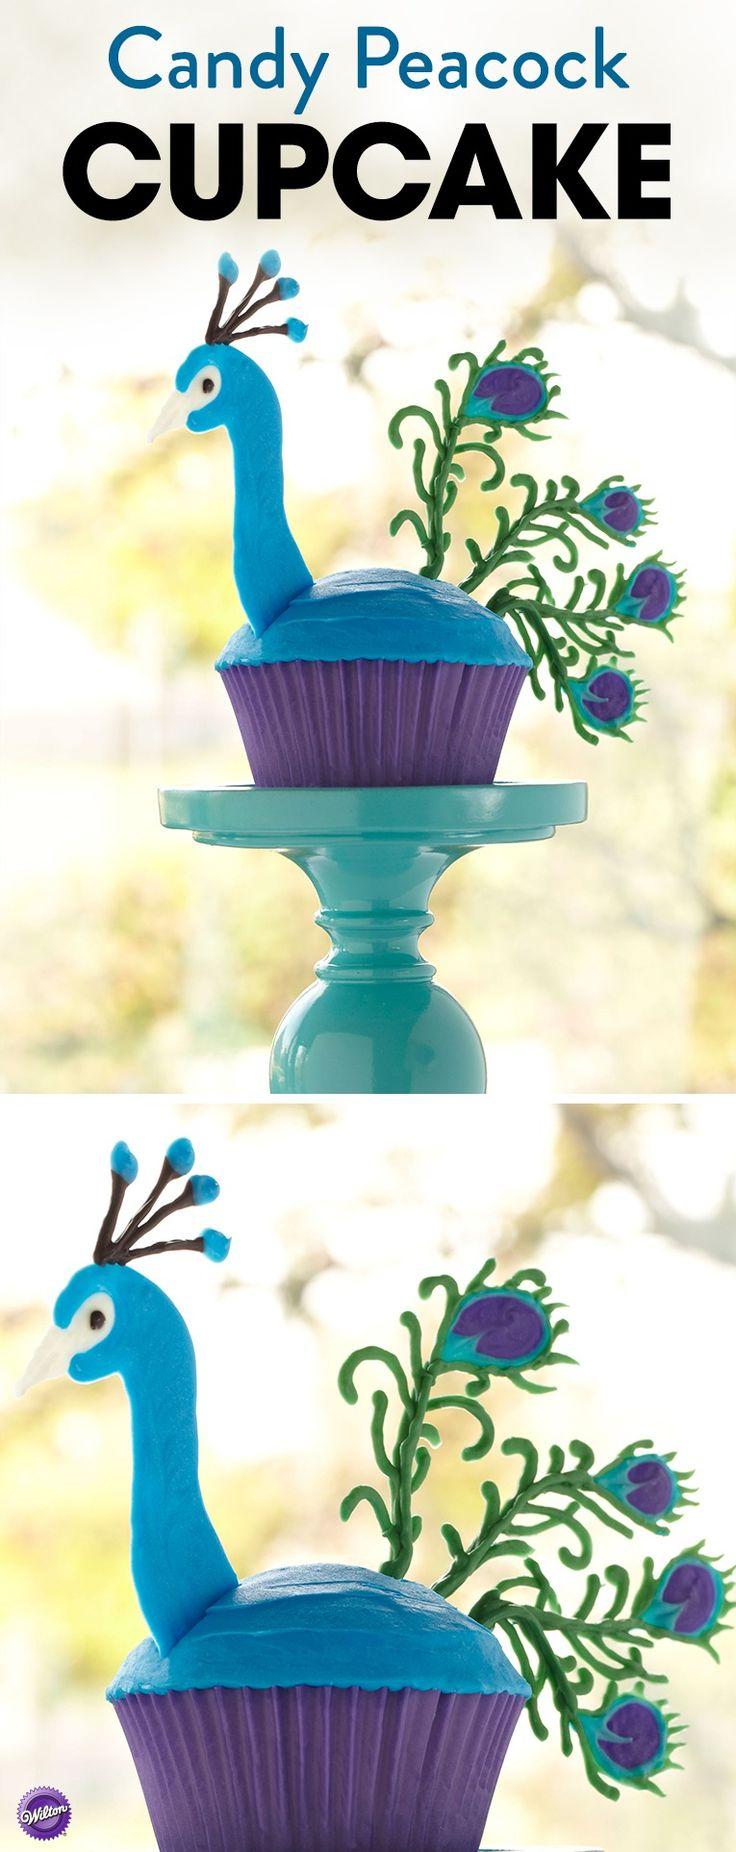 Transform a simple cupcake into a beautiful peacock with Candy Melts candy. A symbol of immortality and beauty, the peacock cupcake will be a hit at your next get-together. Use Wilton candy colors to tint Candy Melts with blue, green, black, teal, and violet.